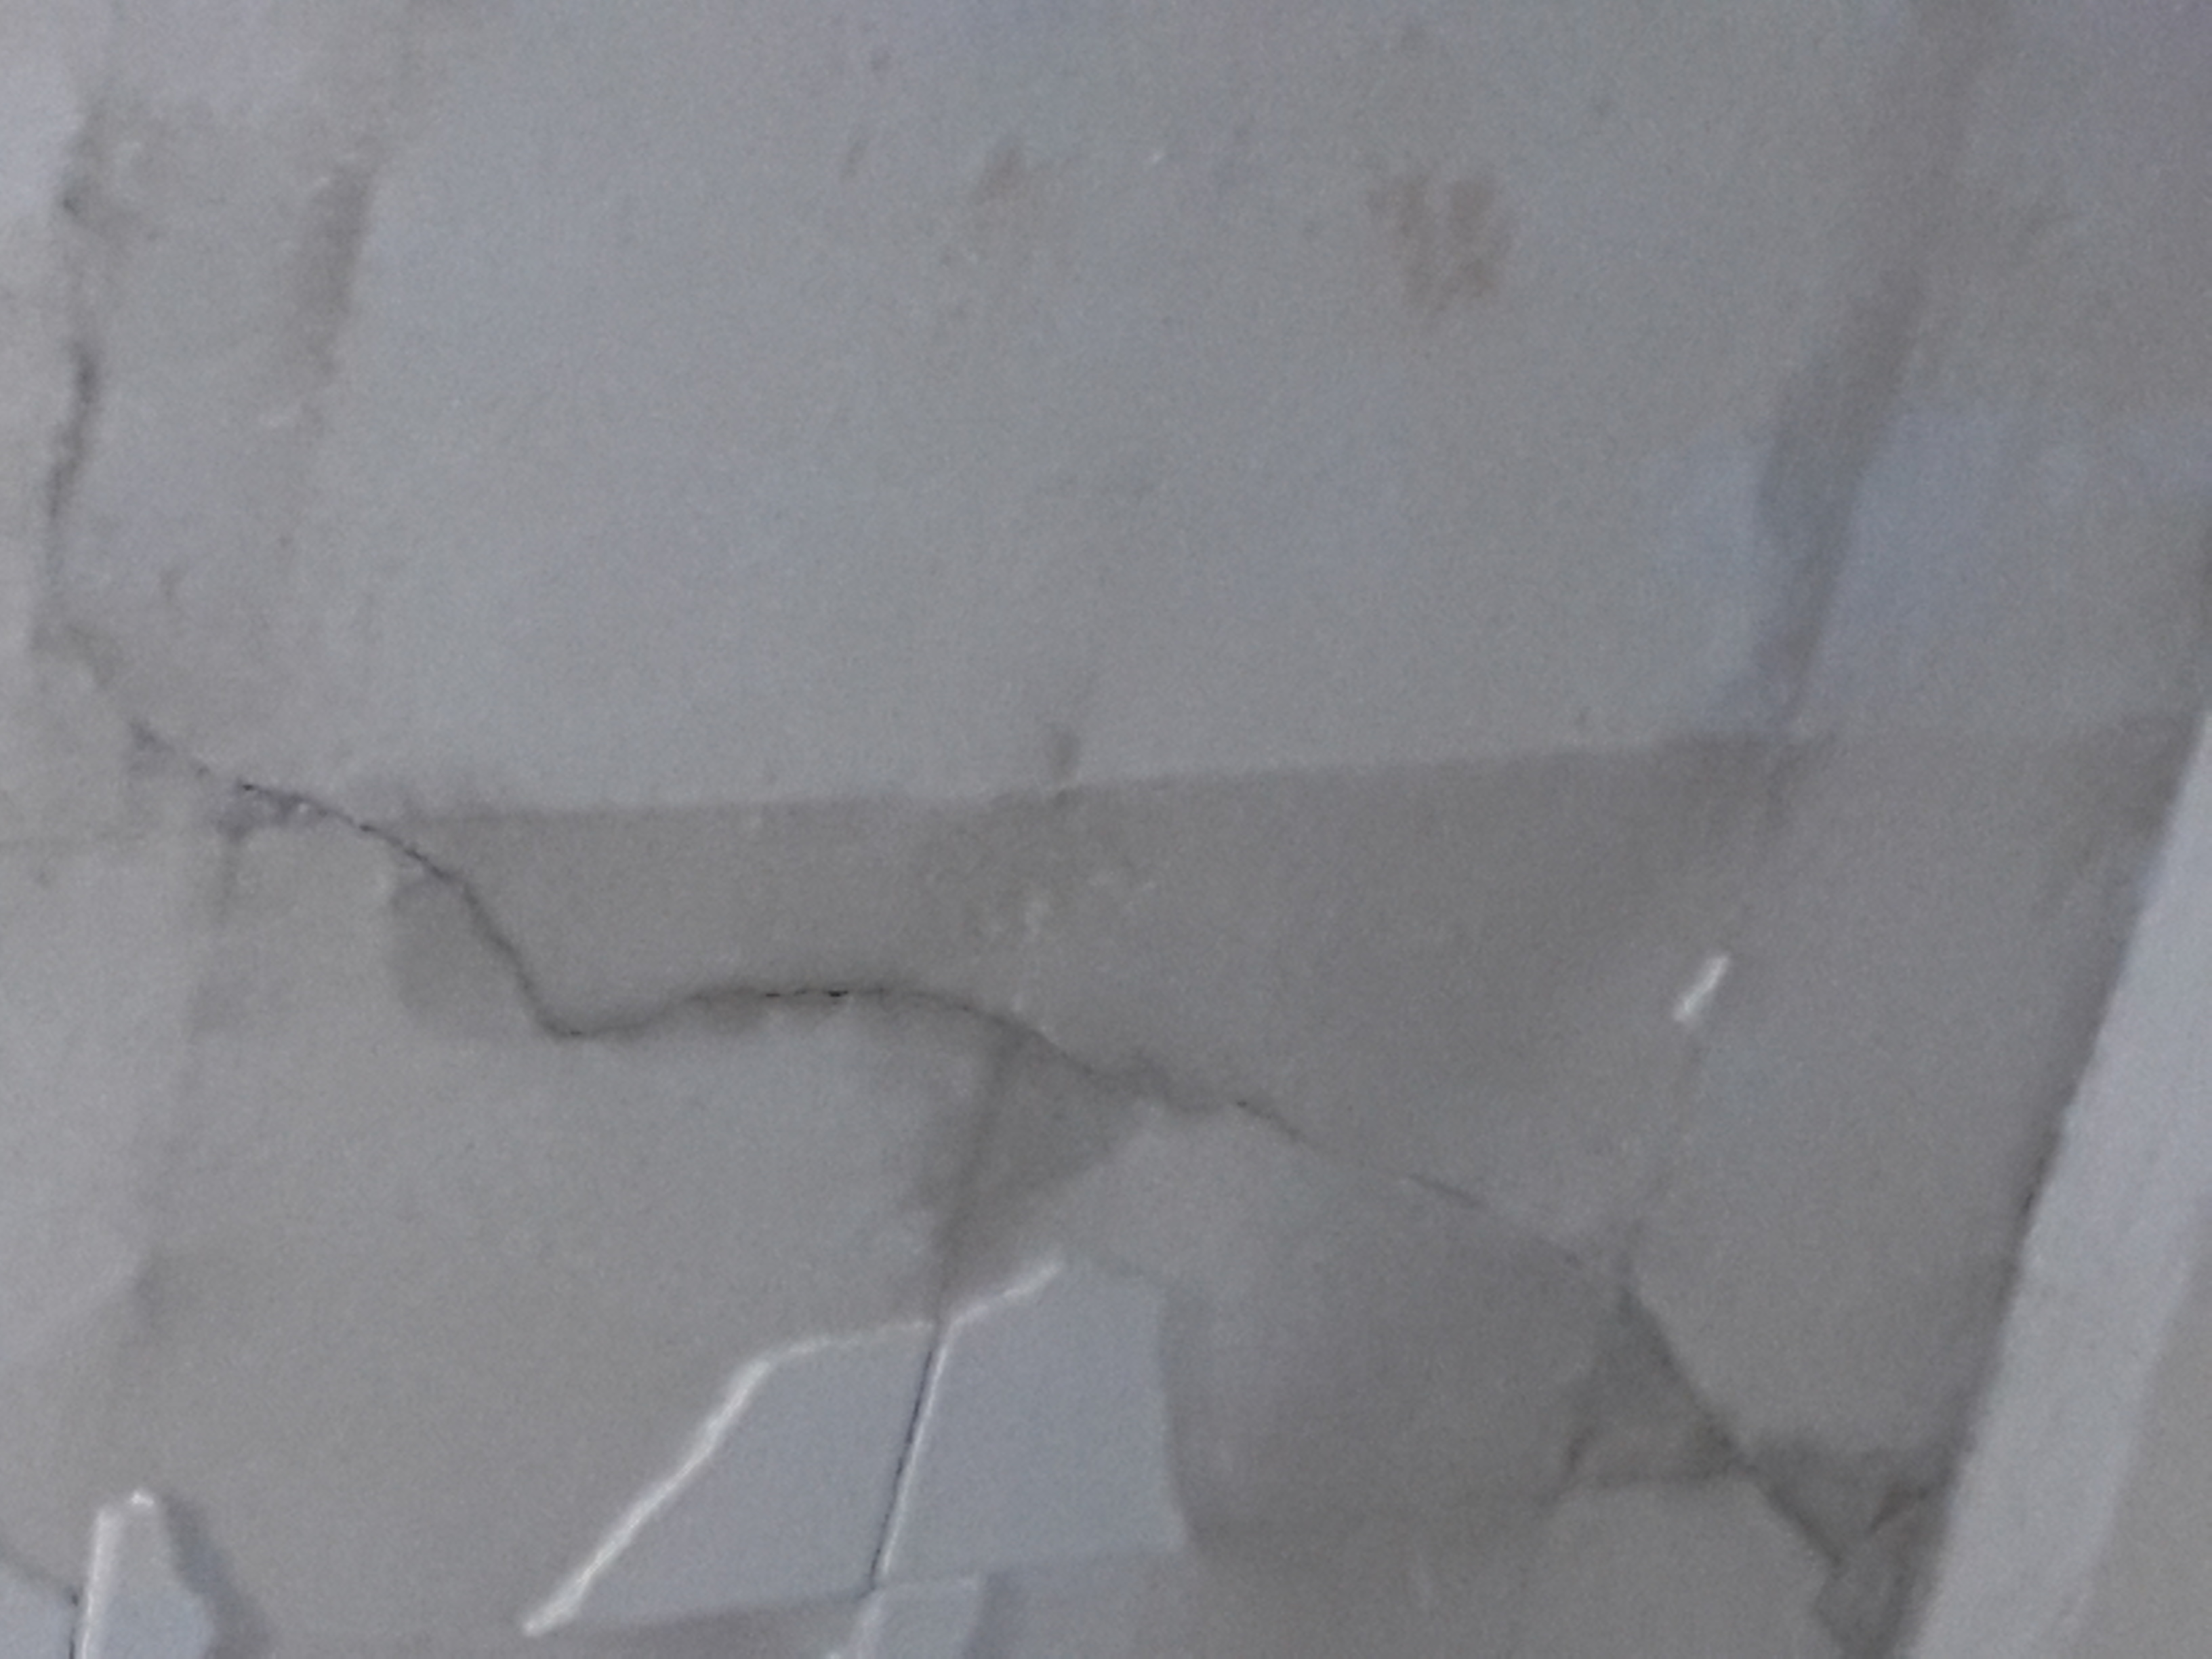 image of cracked ceiling